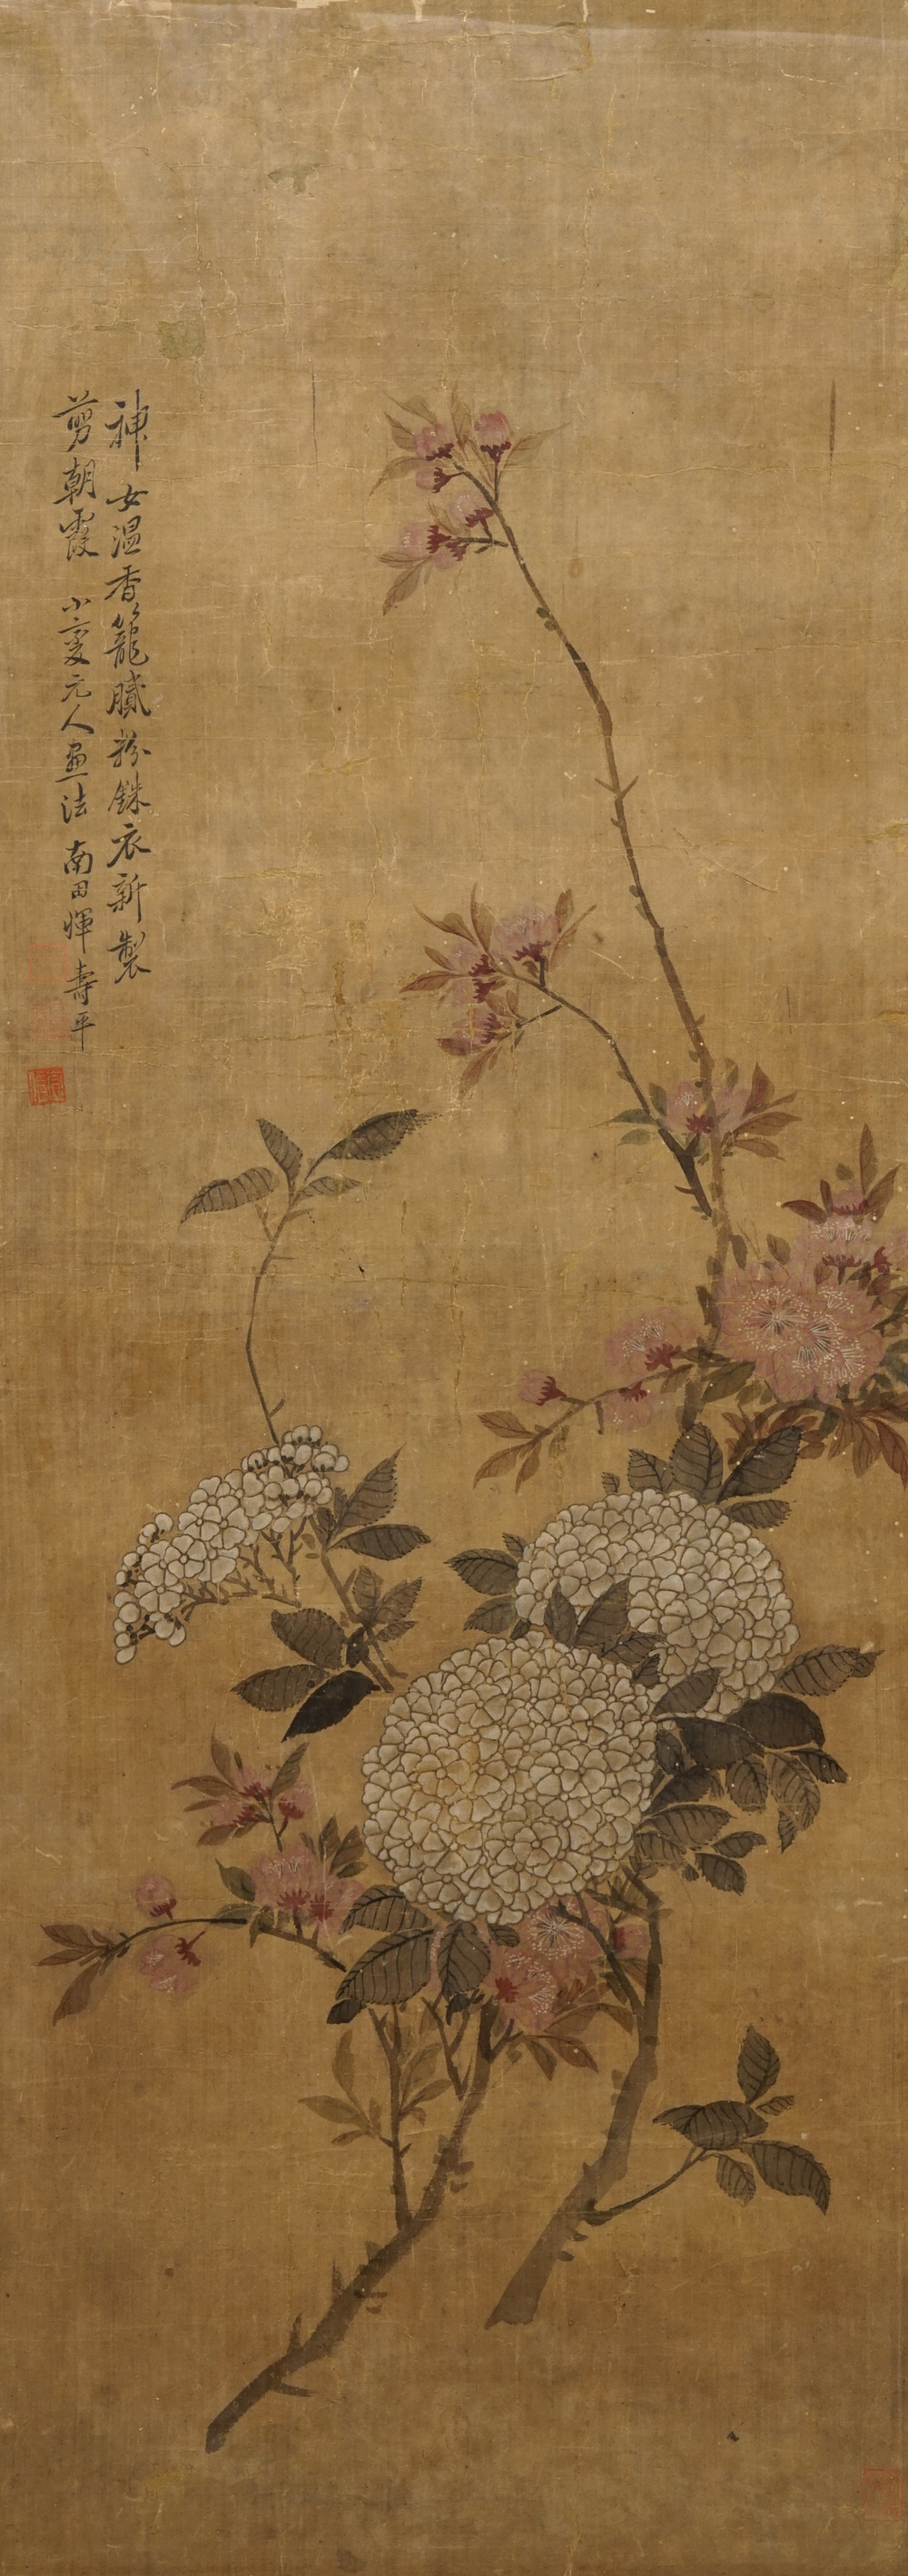 Yun Shouping (1633–1690): Flower branches, ink and colour on paper, 17th C.